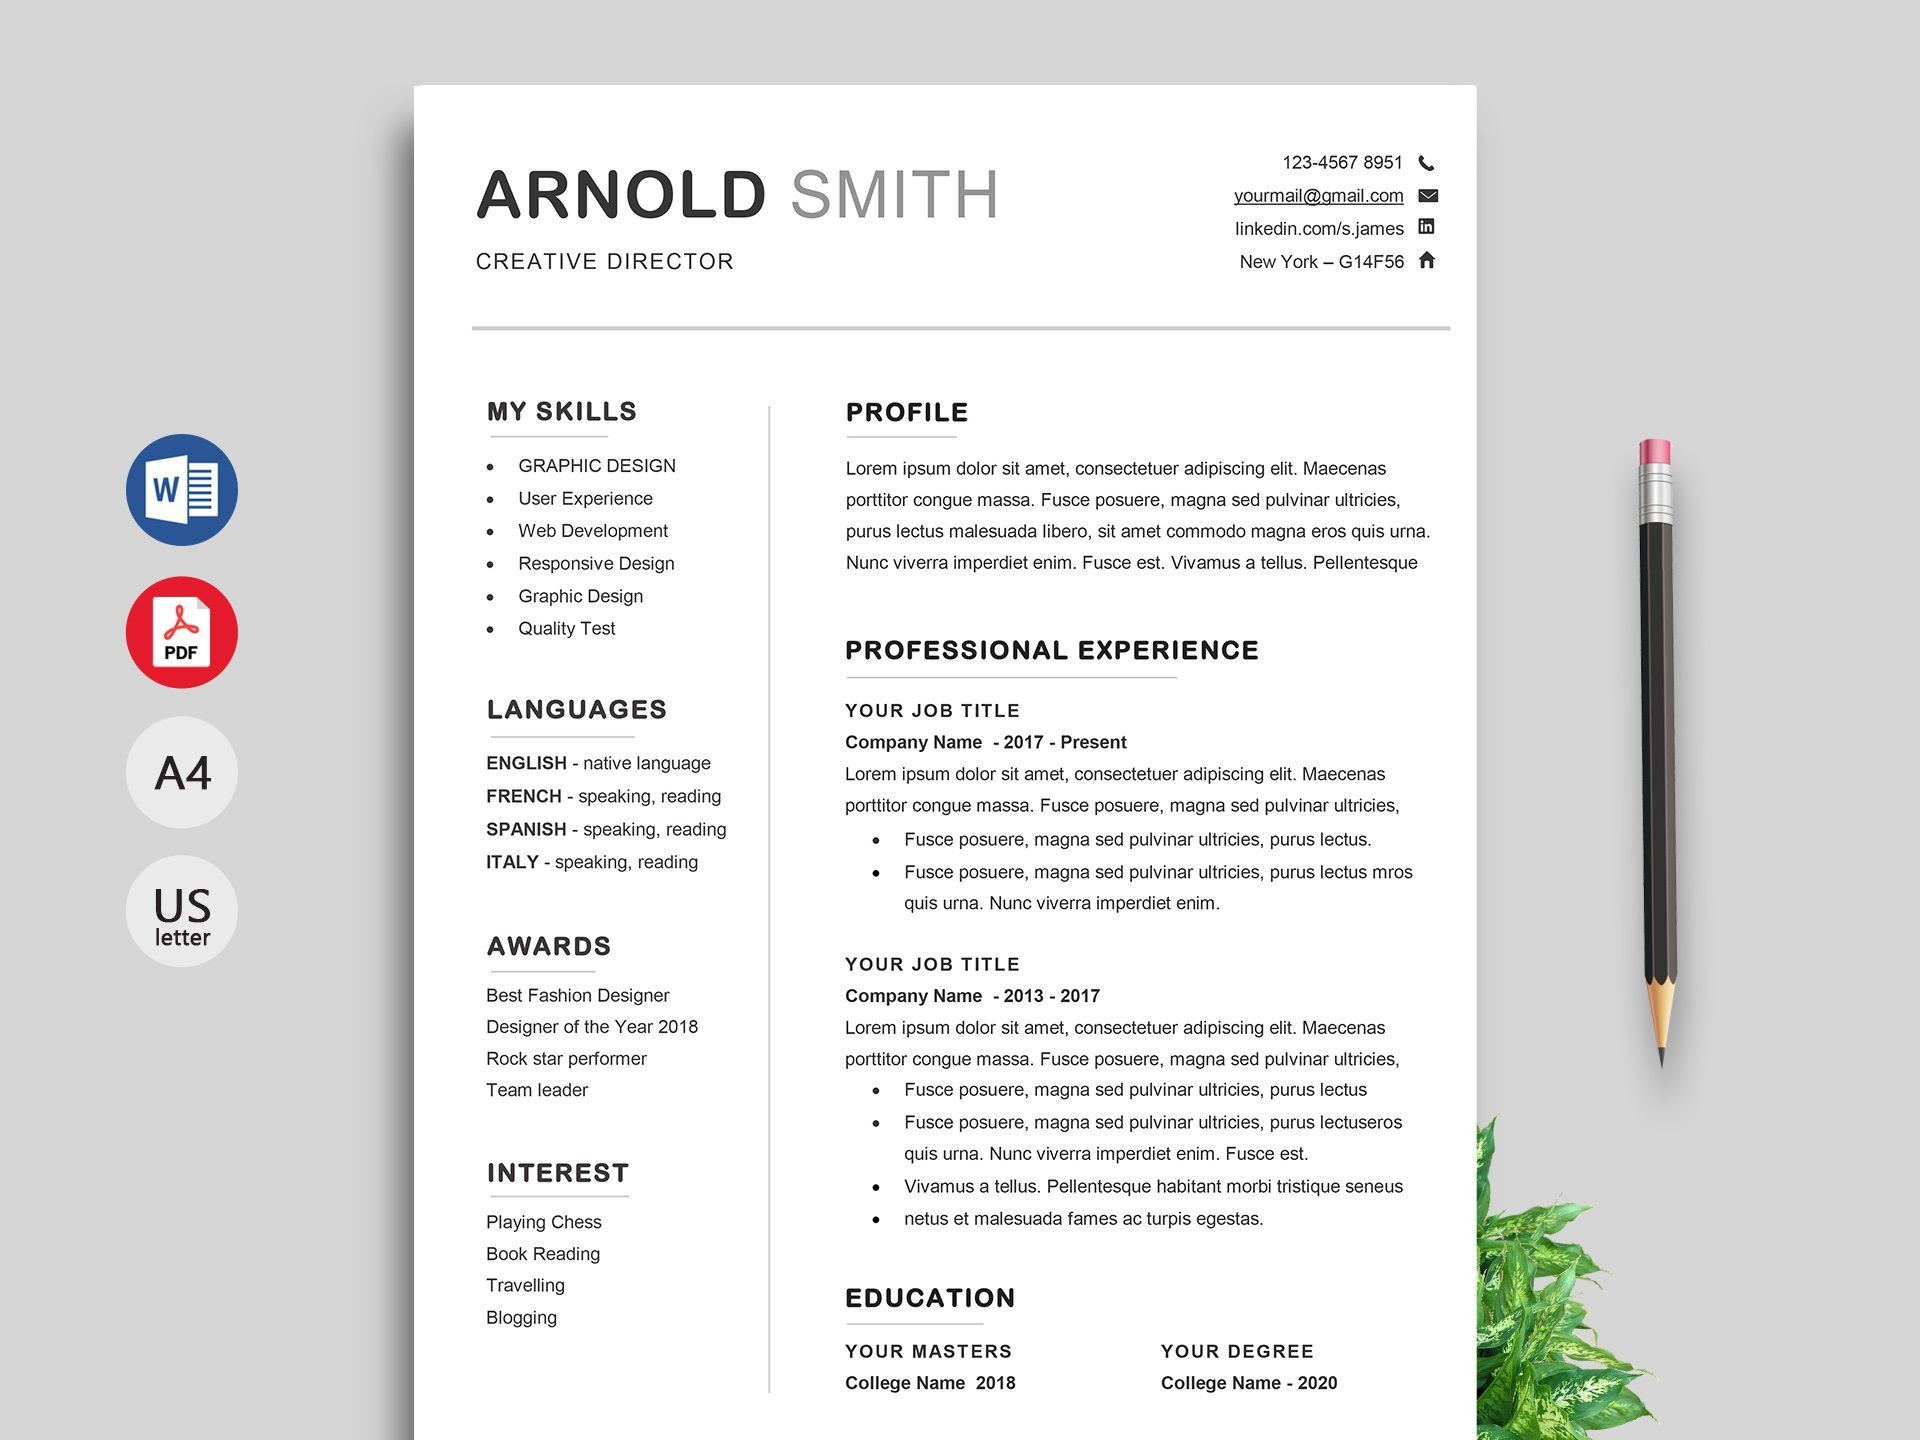 000 Phenomenal Free Resume Download Template Photo  2020 Word Document Microsoft 20101920